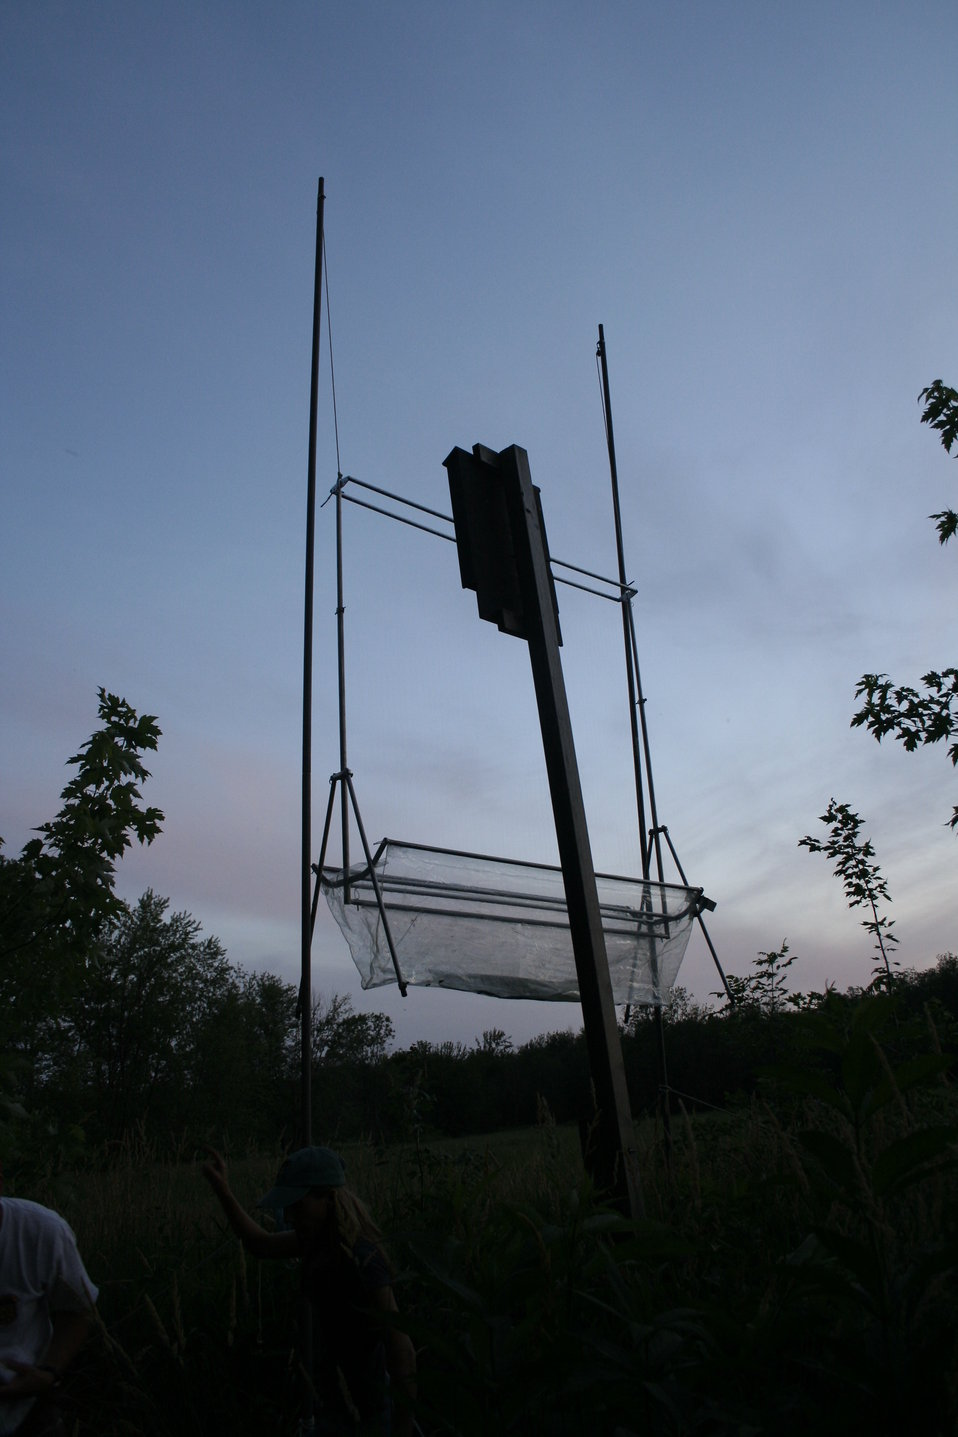 Harp trap and bat house